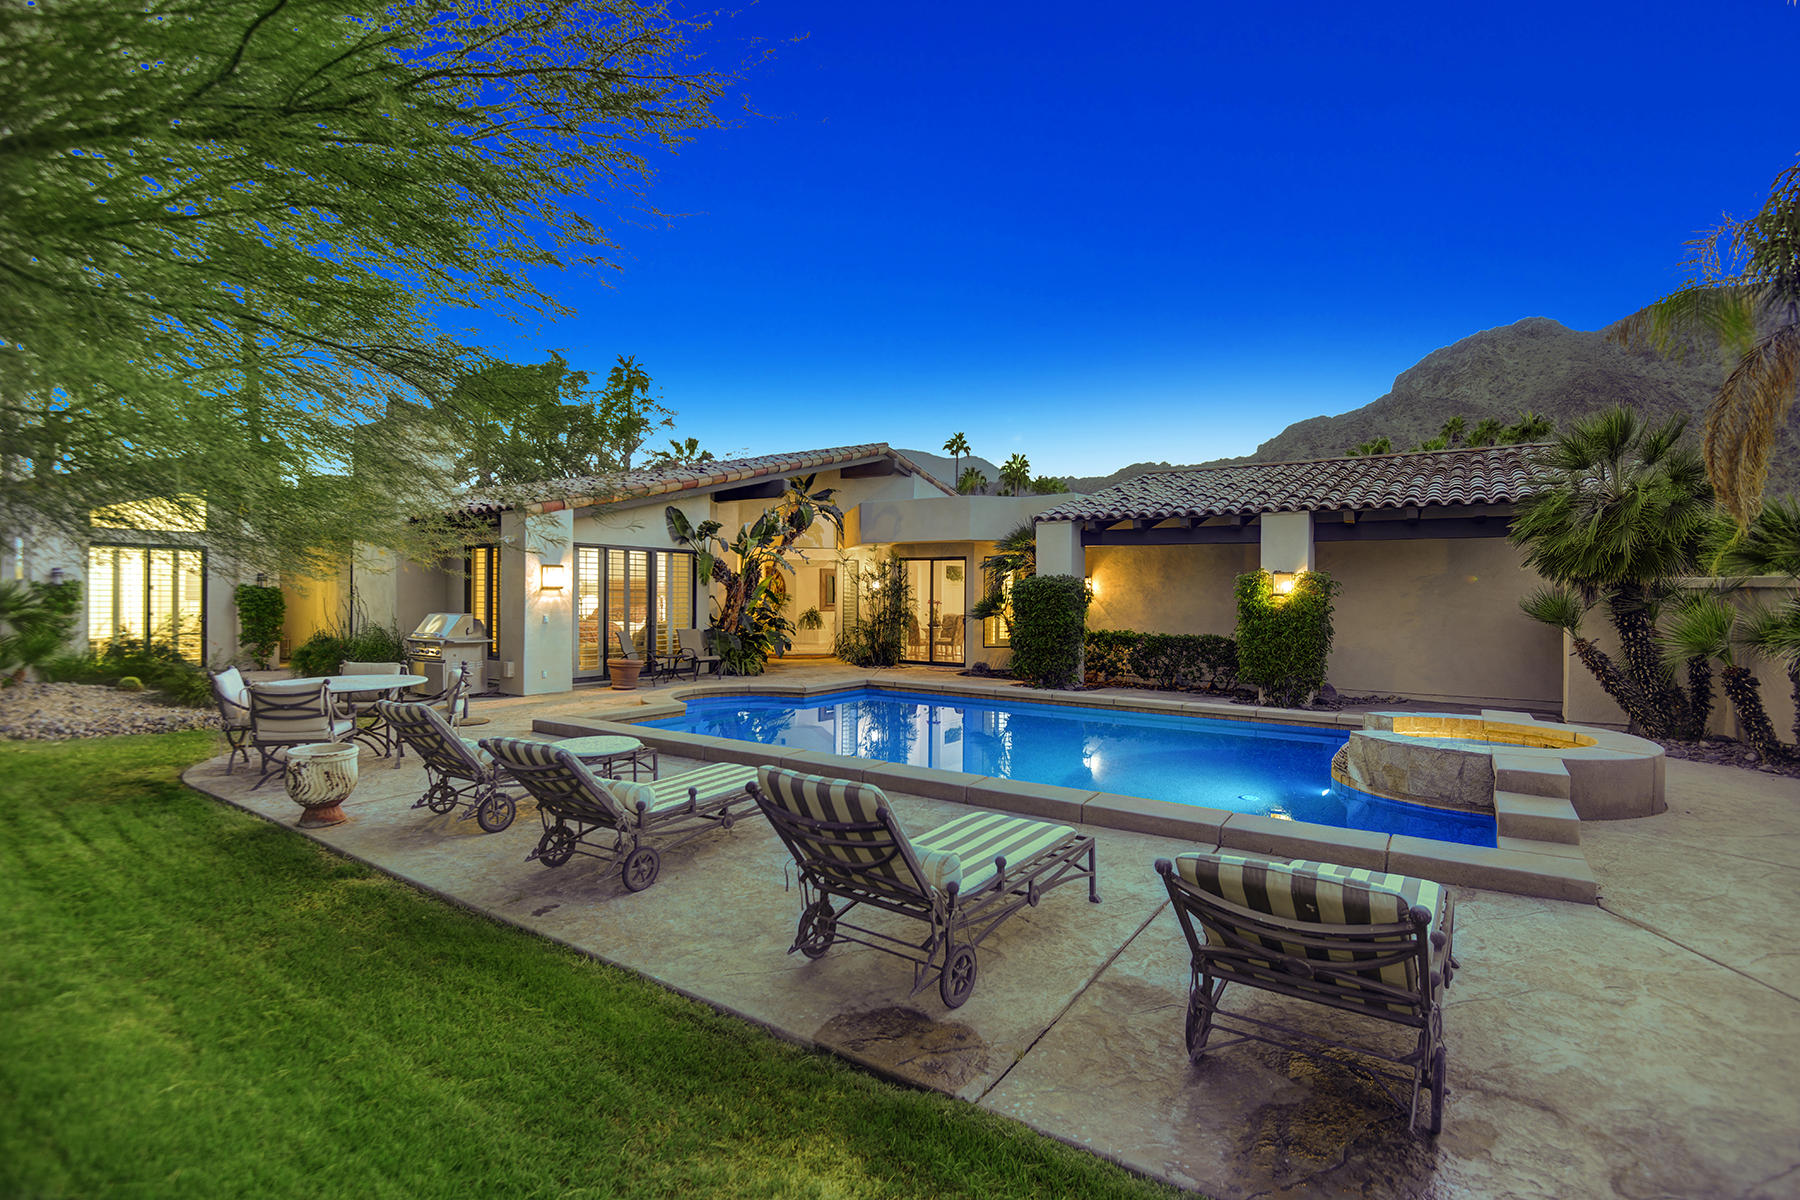 This gorgeous, former model home features unobstructed, south and west facing views of the spectacular Santa Rosa Mountains, and overlooks the 10th fairway and the 18th hole with lake views on the Arnold Palmer Private Course.  Situated on an oversized, premium lot, this home is in the most desirable location throughout all of PGA West and is sure to impress.  